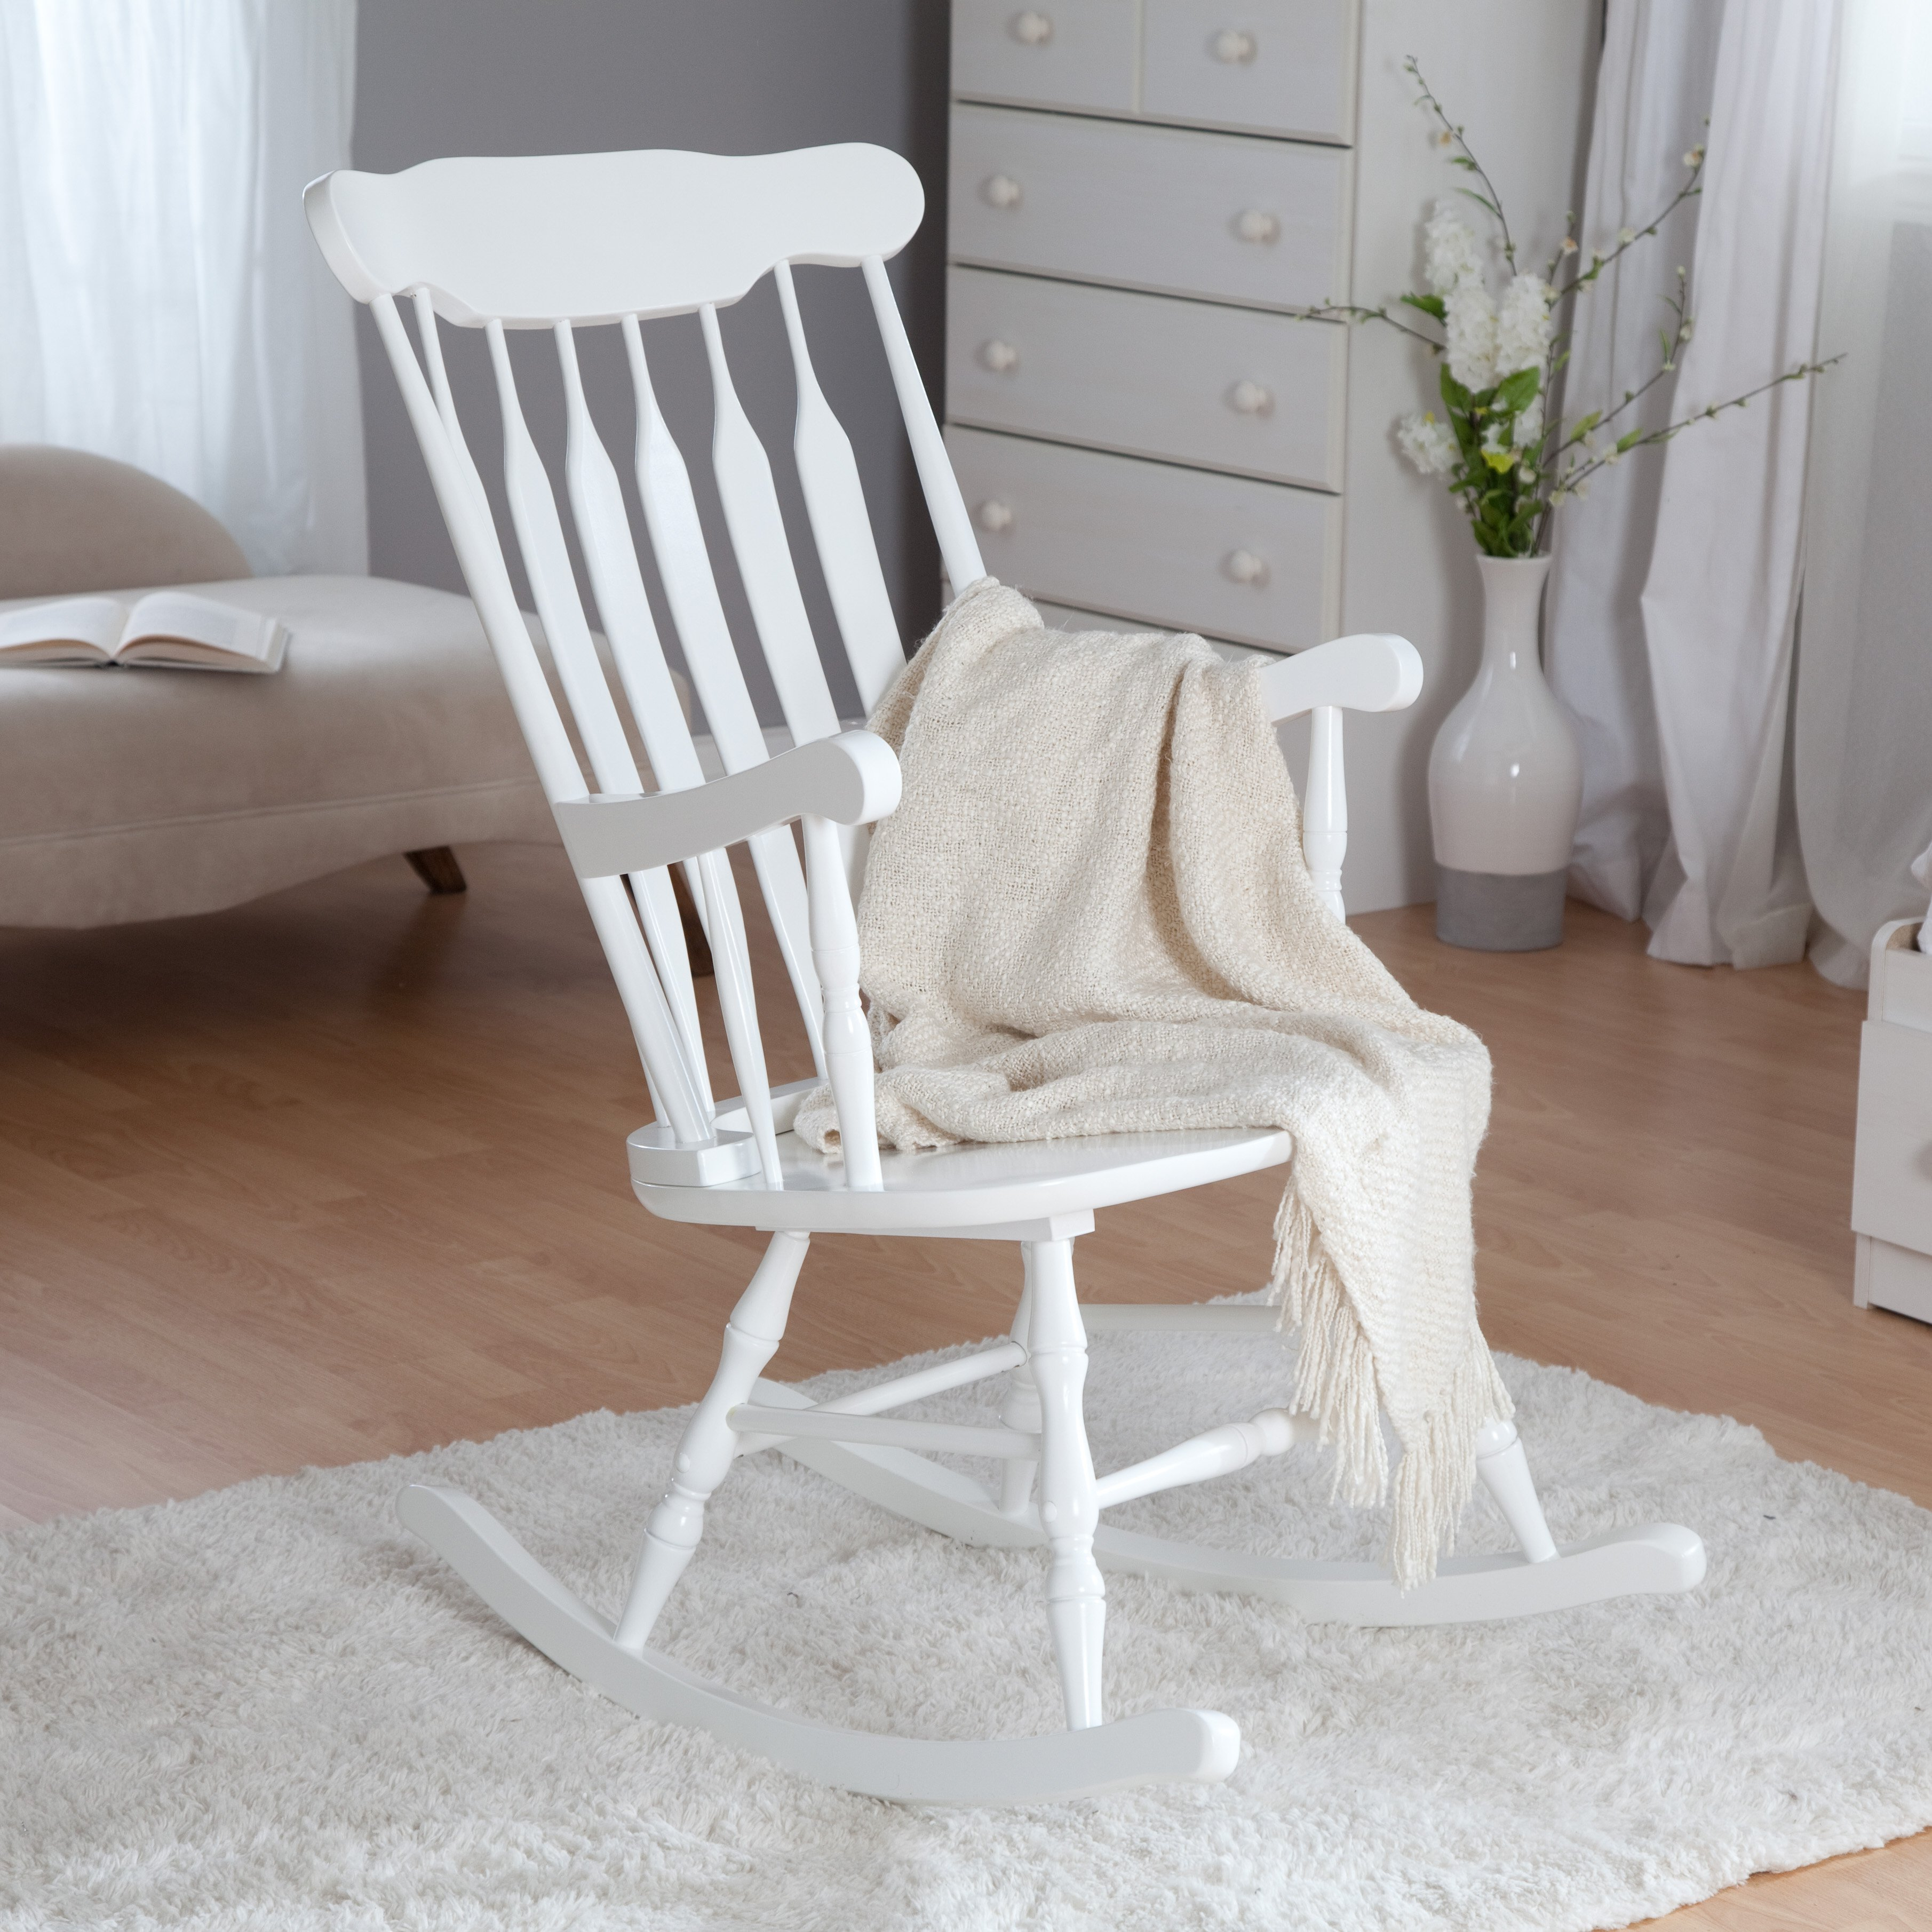 Rocking Chairs For Nursery Rocking Chair For Nursery Mrsapo